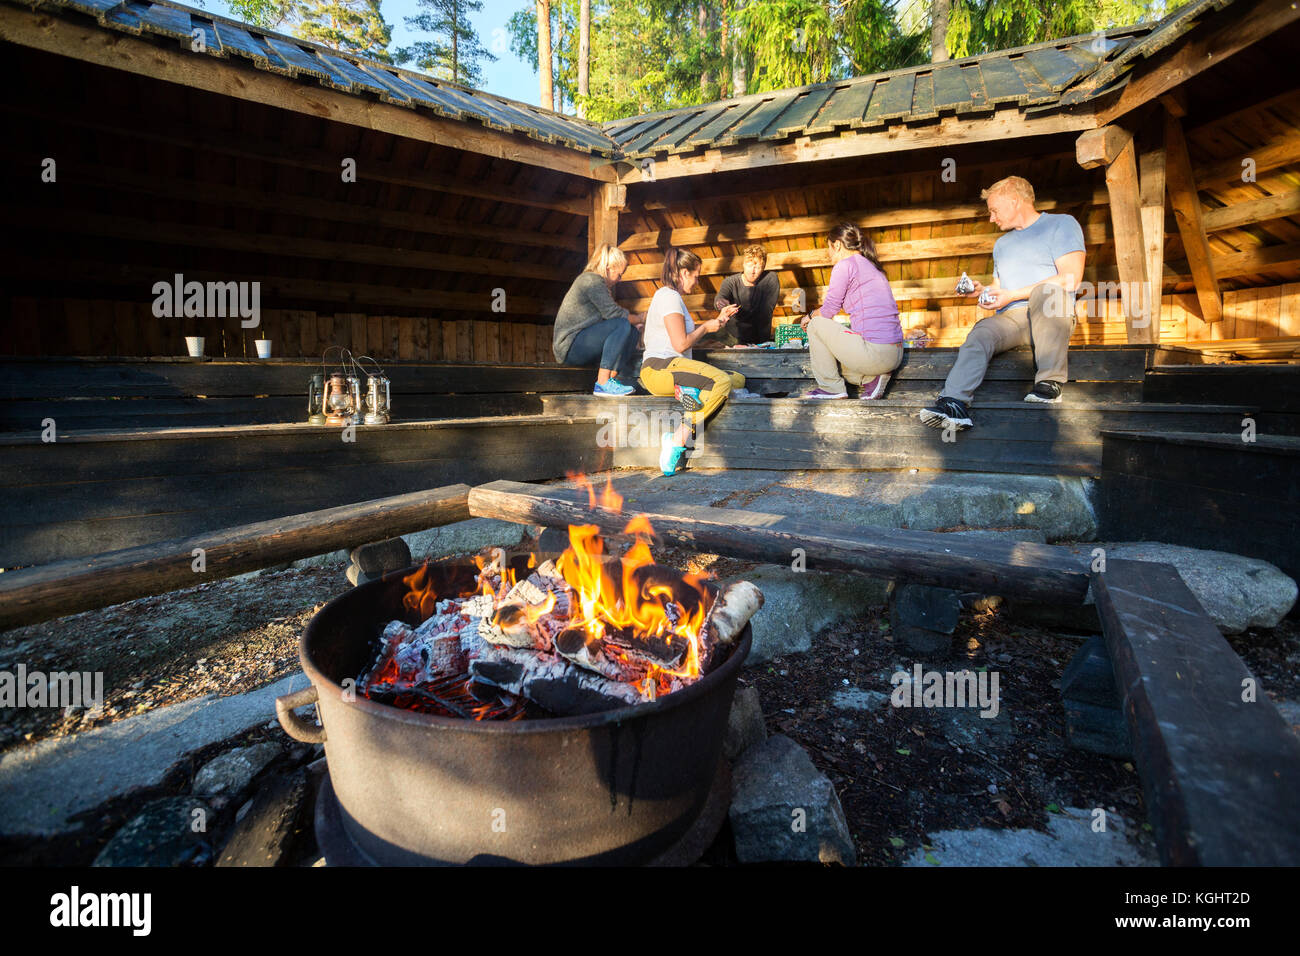 Burning Firepit With Friends Preparing Meal In Shed - Stock Image